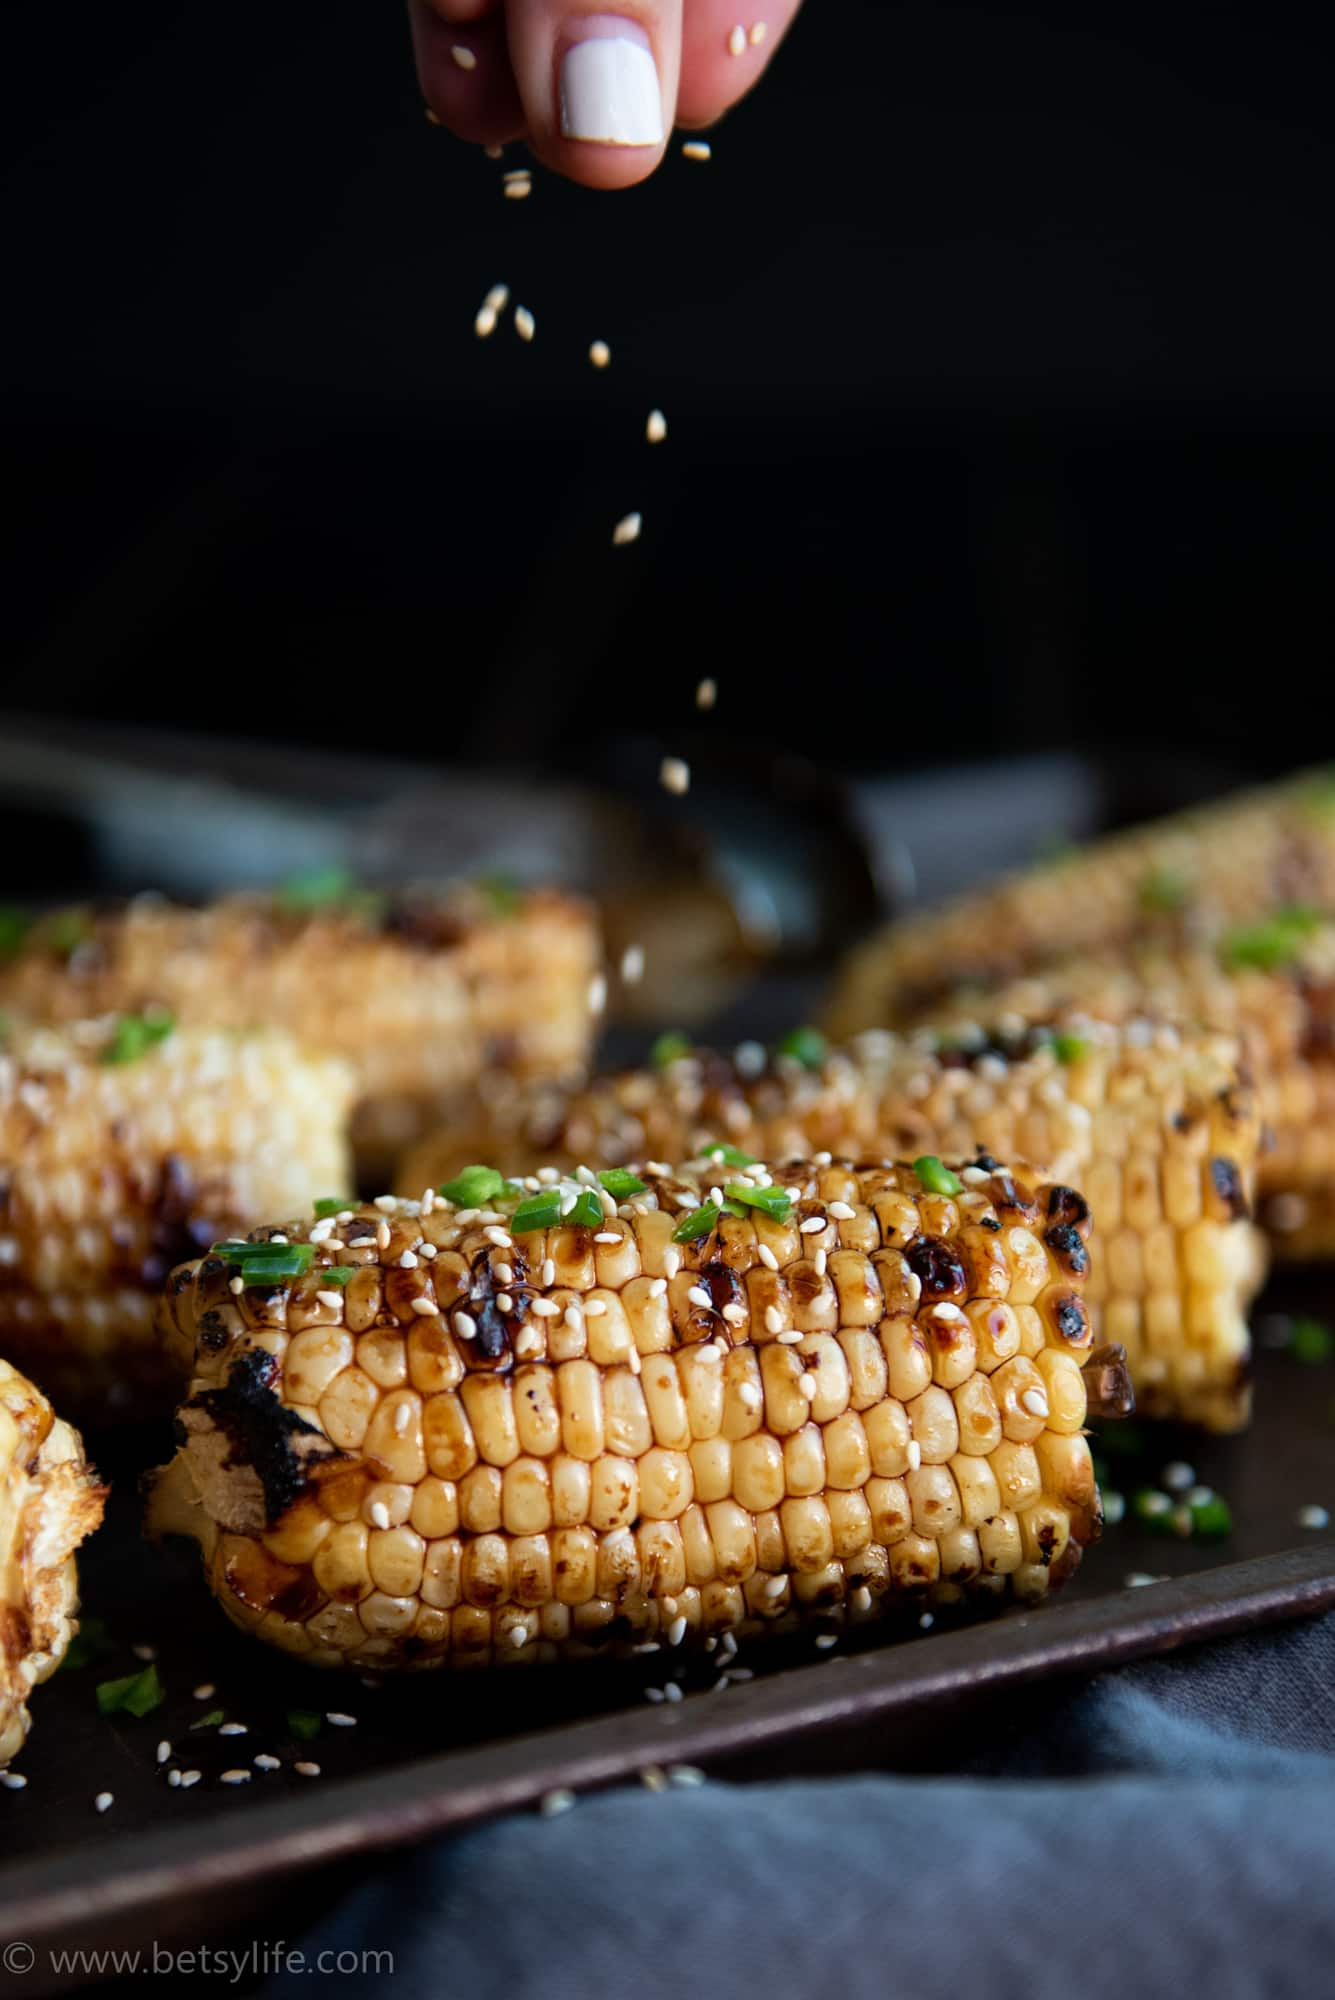 Sesame seeds being sprinkled on grilled corn on the cob